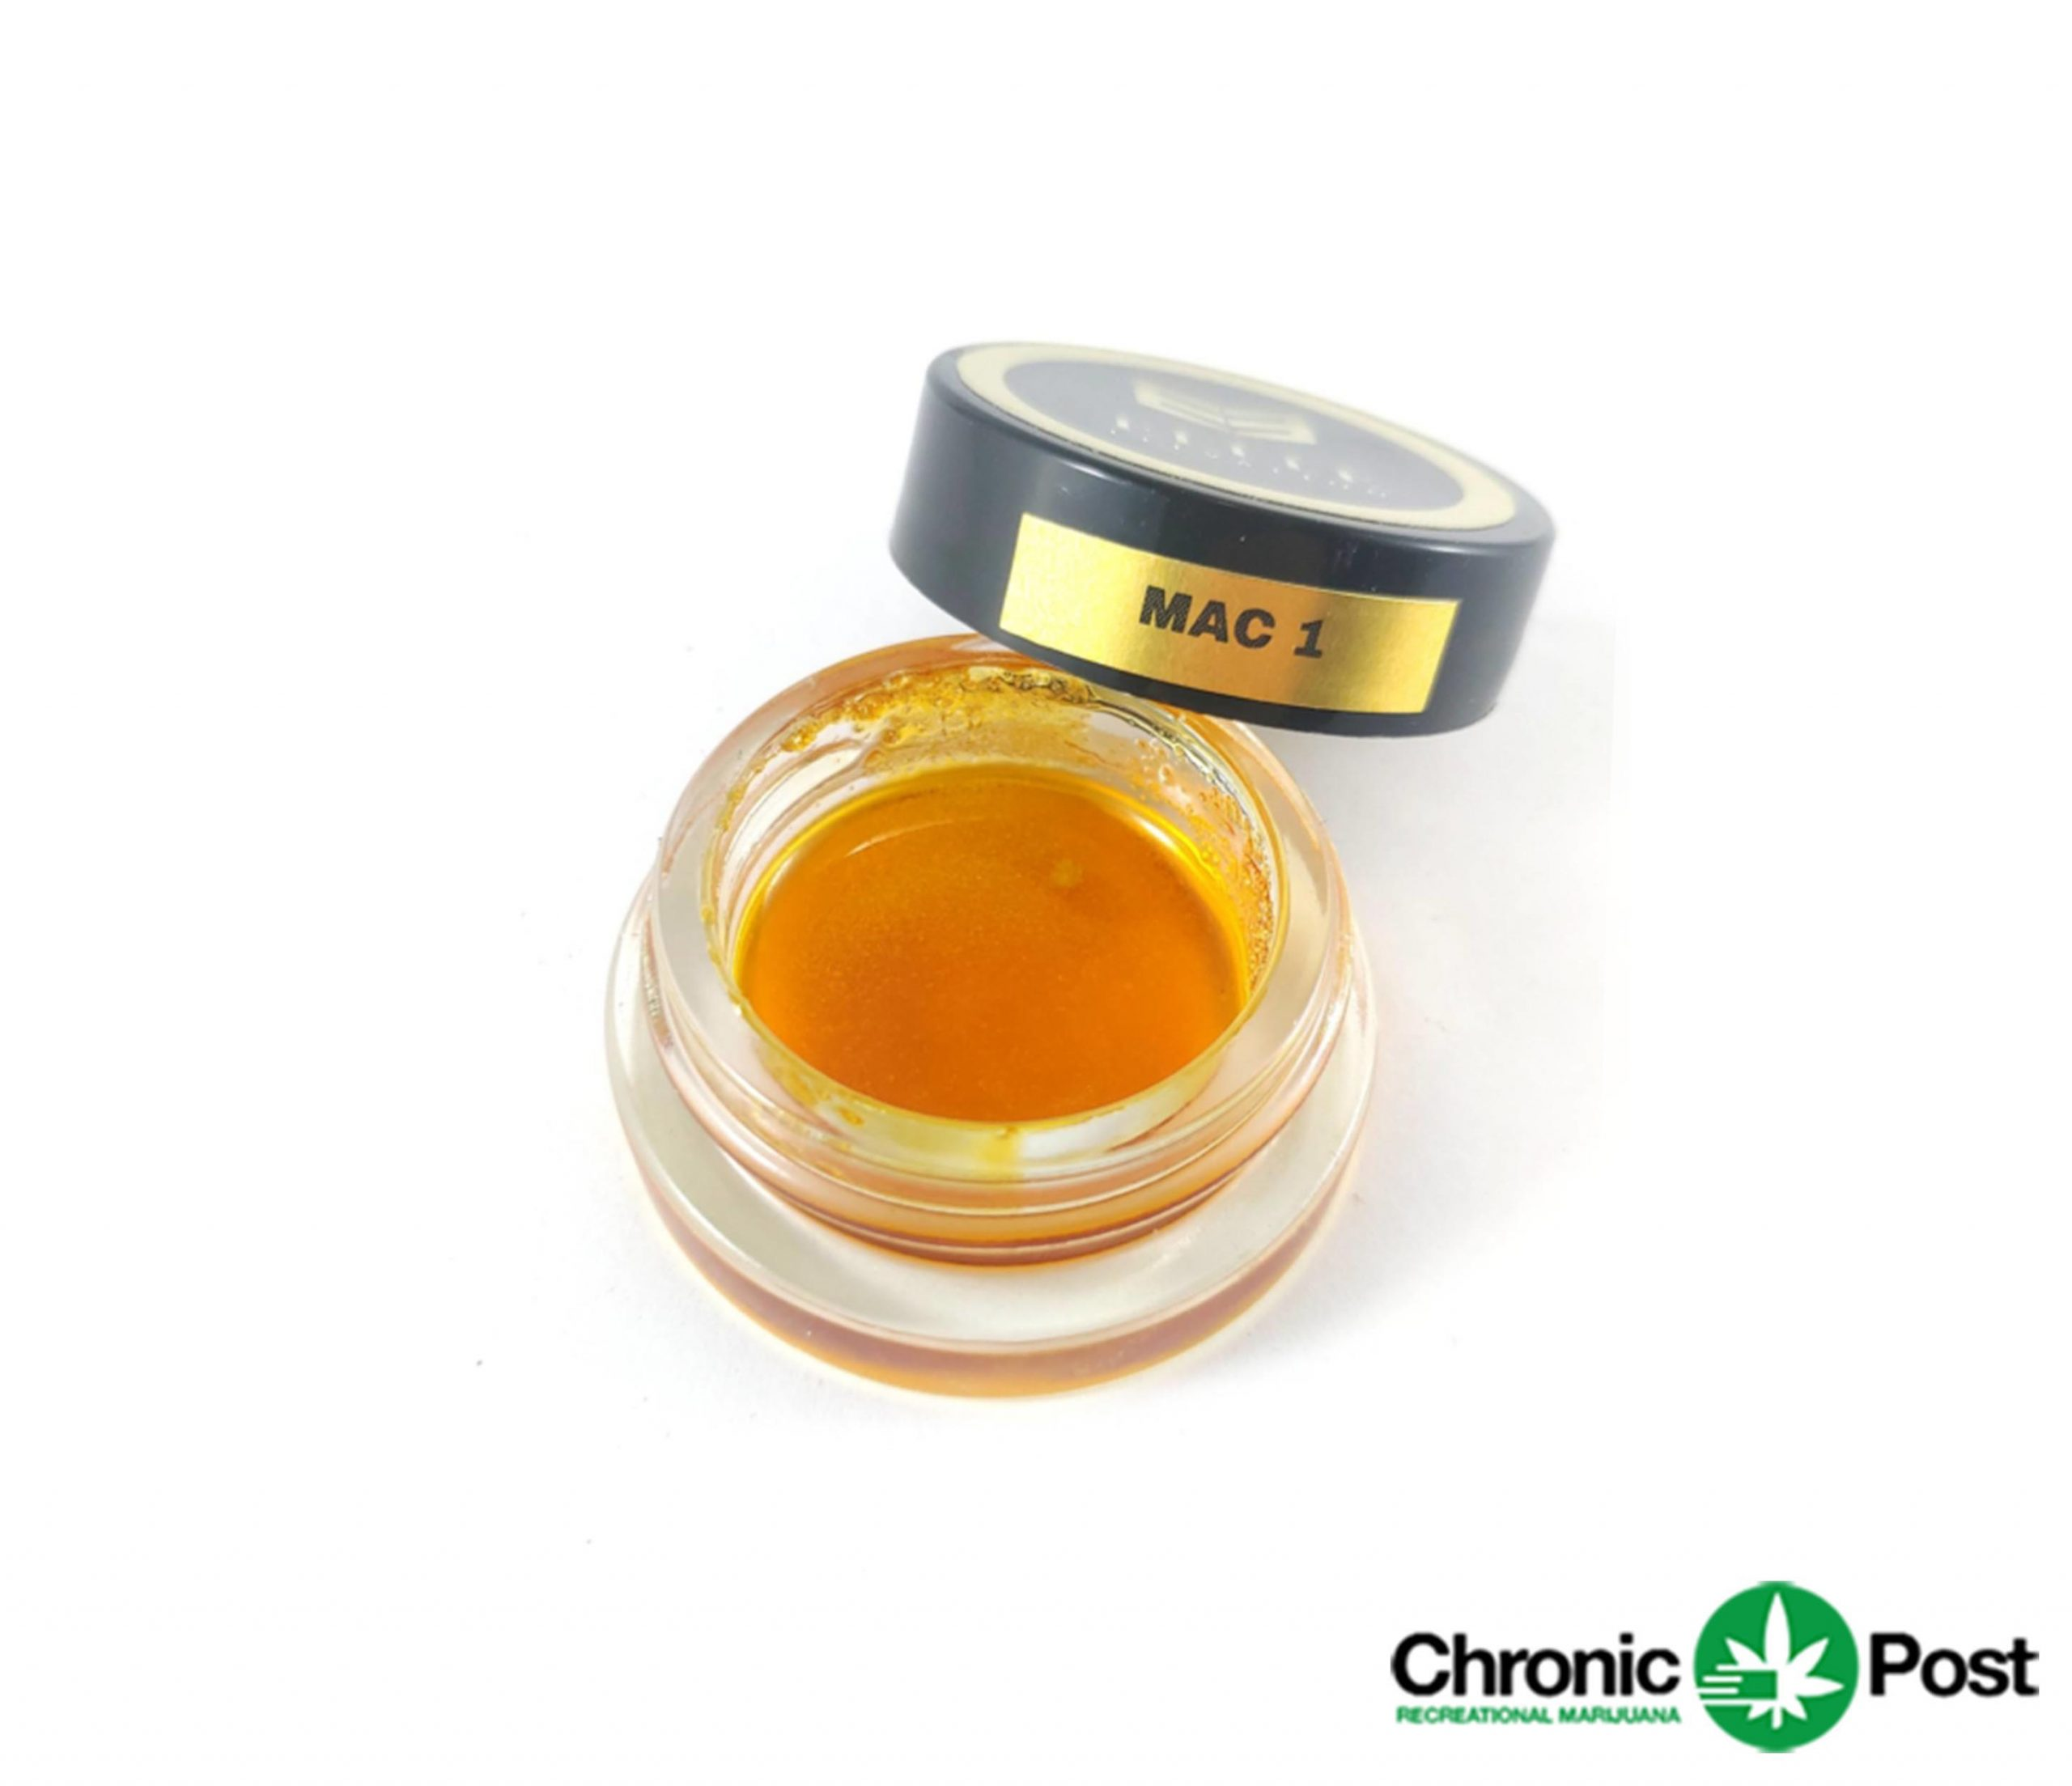 Live Resin (Assorted) by Elite Elevation by Chronic Post - Image © 2020 Chronic Post. All Rights Reserved.